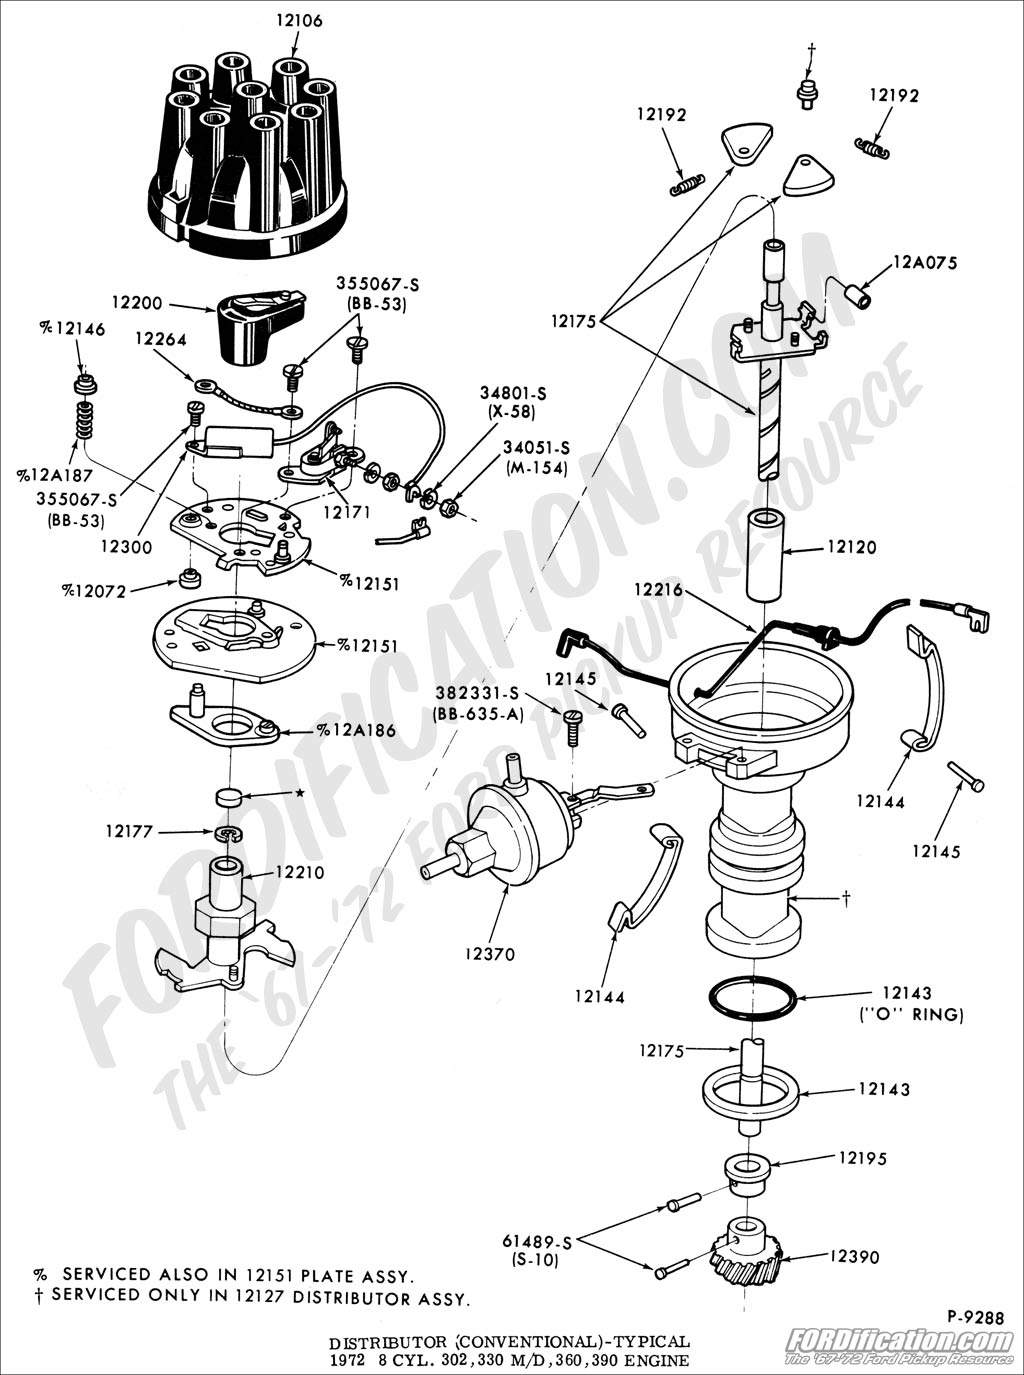 hight resolution of ford 360 v8 engine diagram wiring diagram mix 390 ford engine diagram wiring diagrams390 ford engine